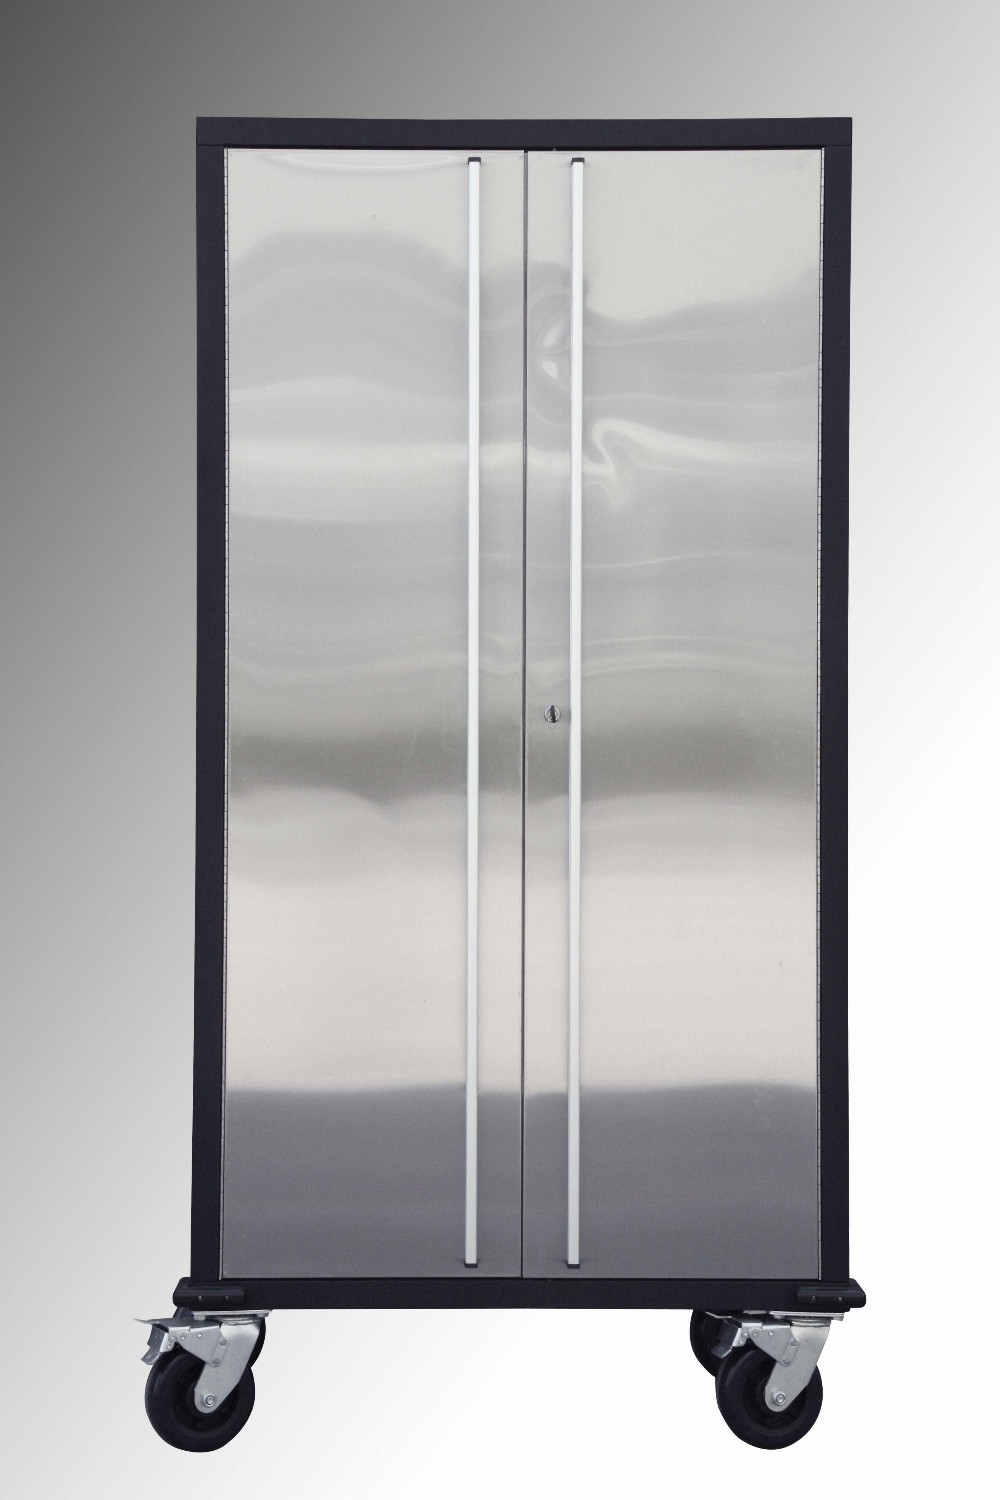 Office Furniture With Door & Lock Cabinet Stainless Steel ...